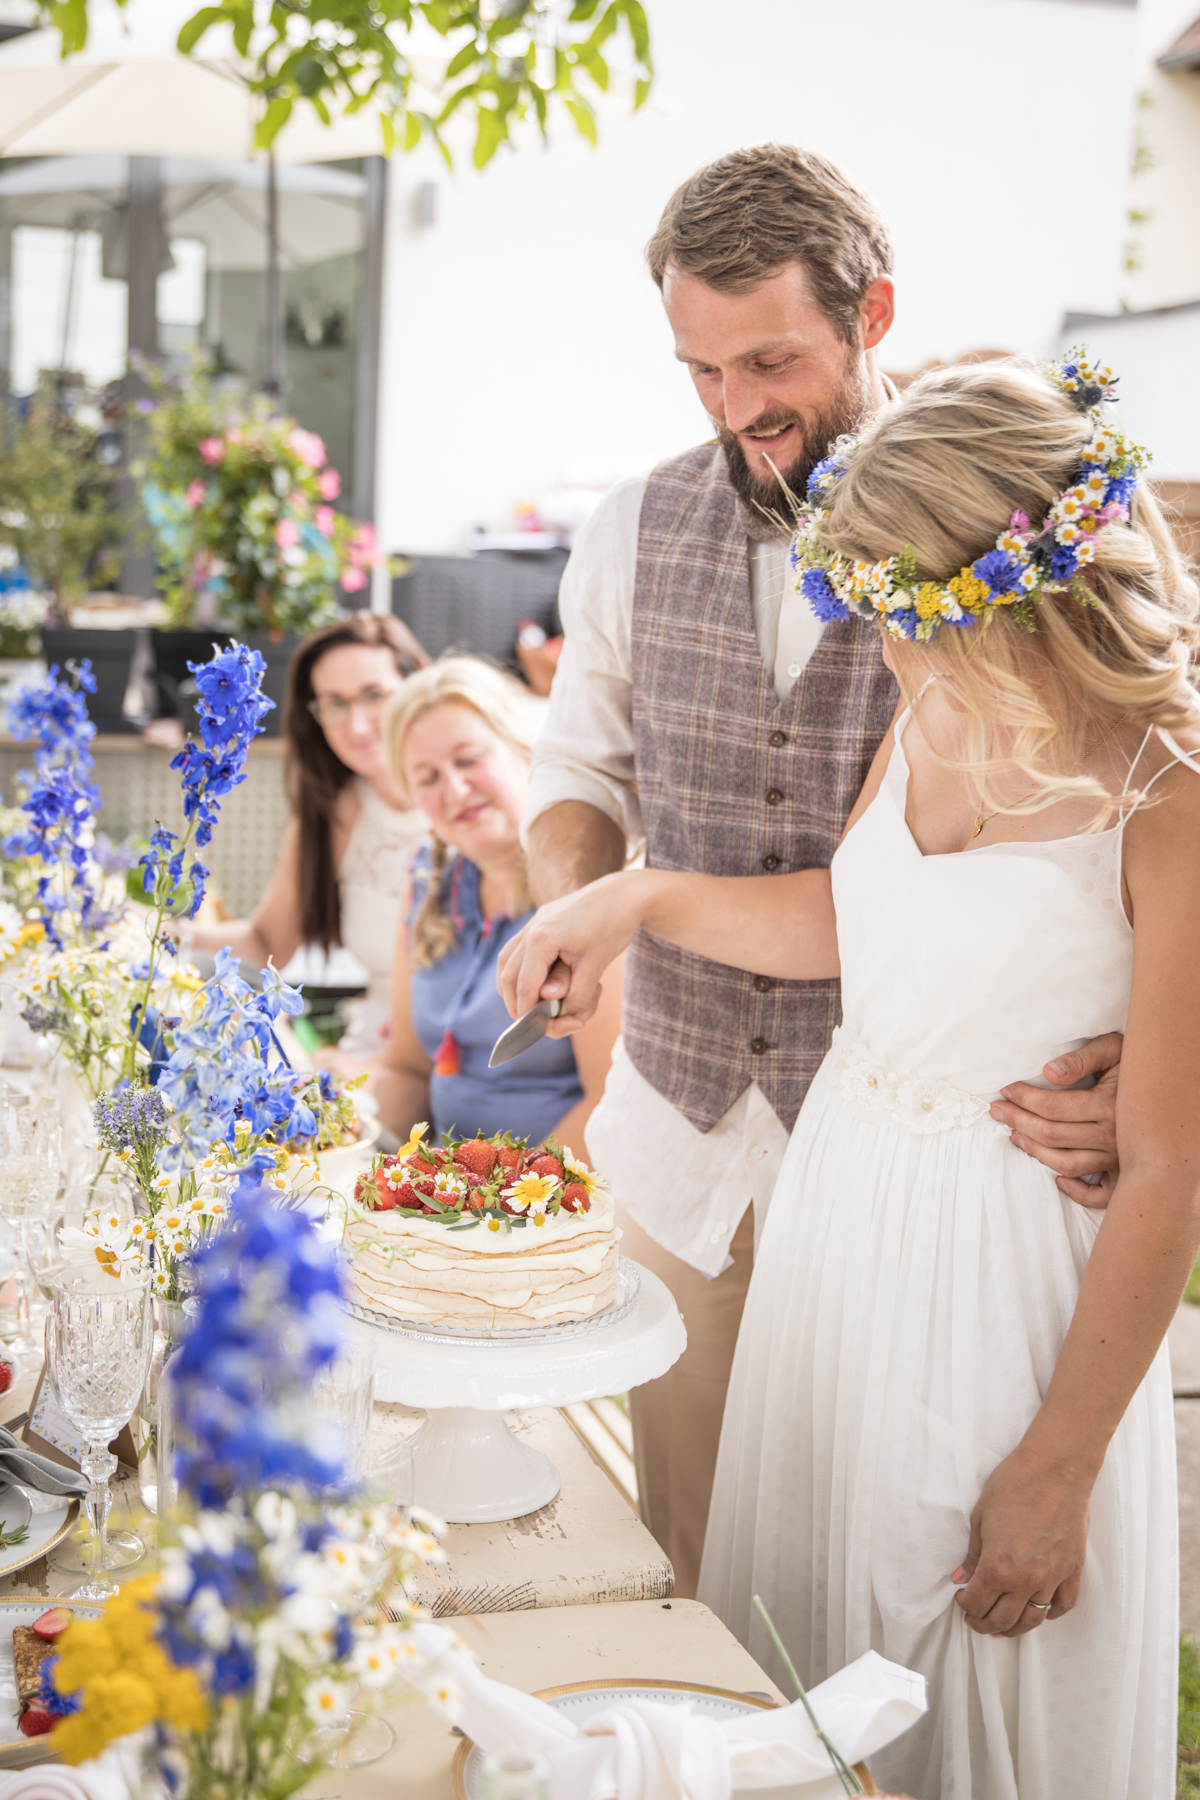 MIDSOMMAR WEDDING - Ideas for a wedding in your own garden